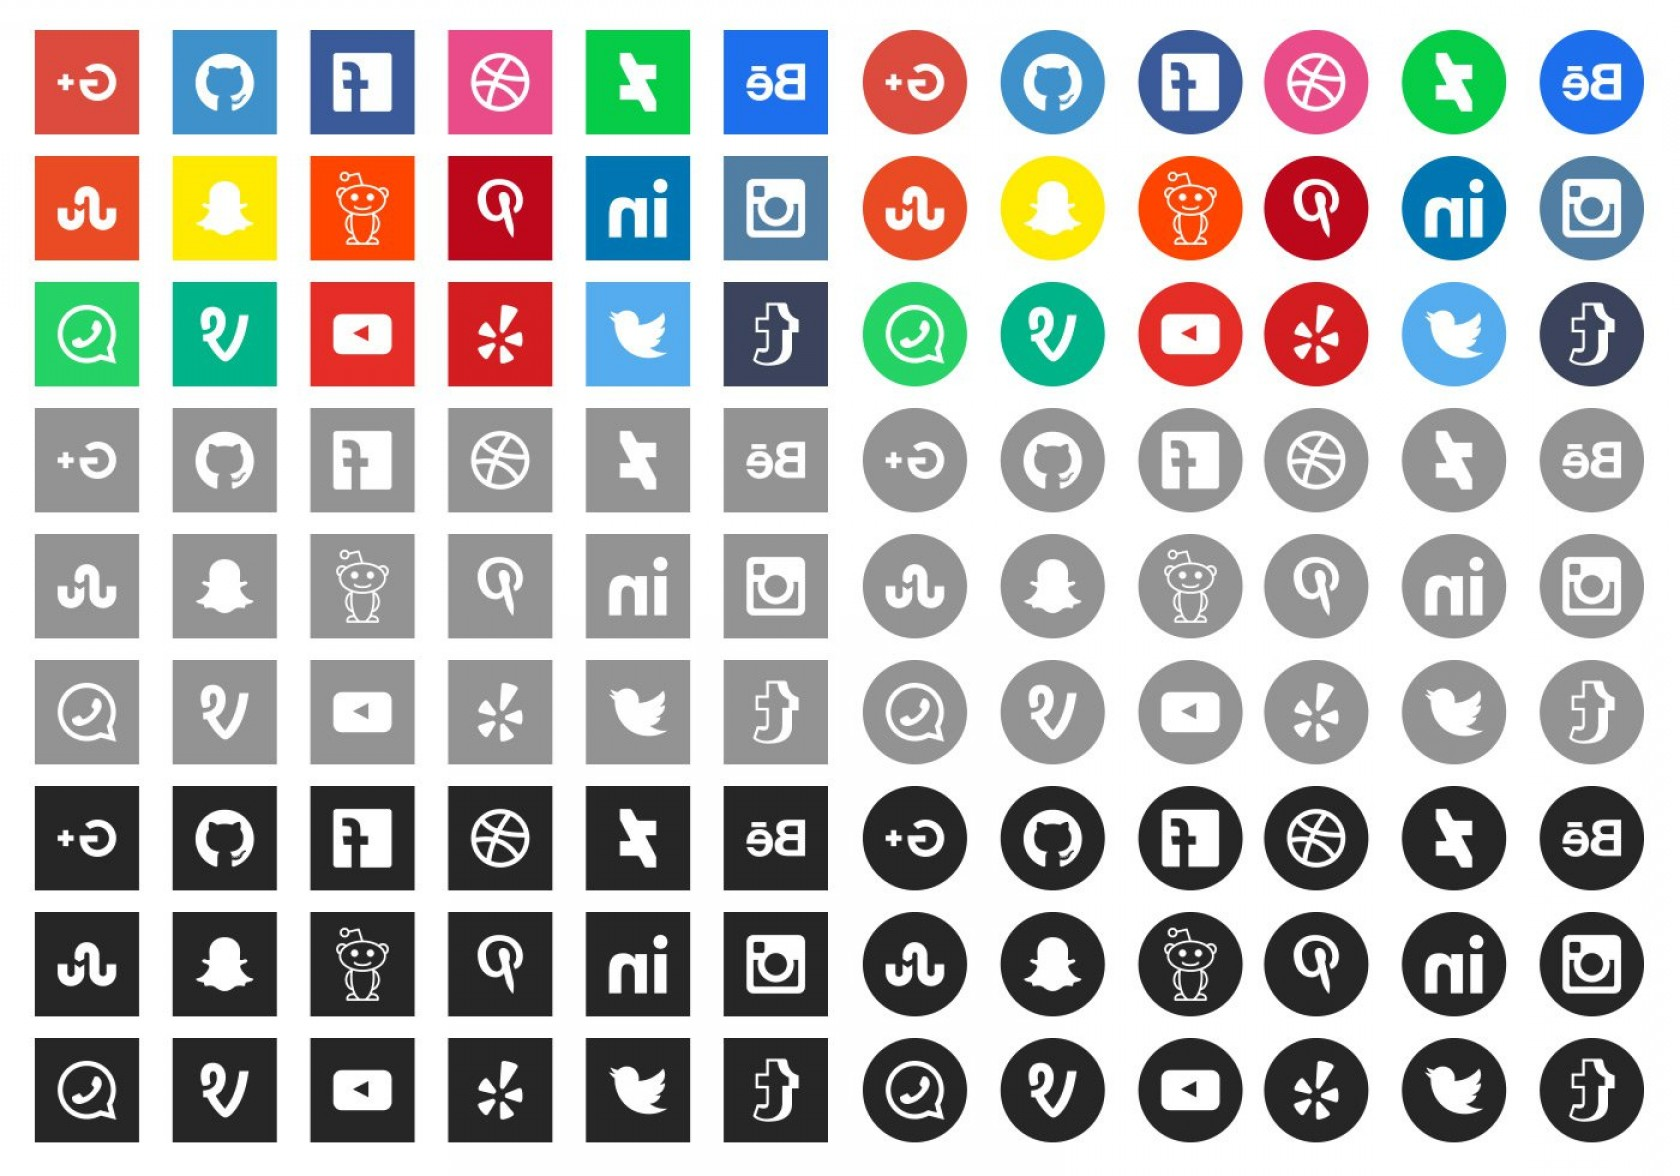 Pencil Icon Vectors Social Media: Latest Social Media Icons For Web Design